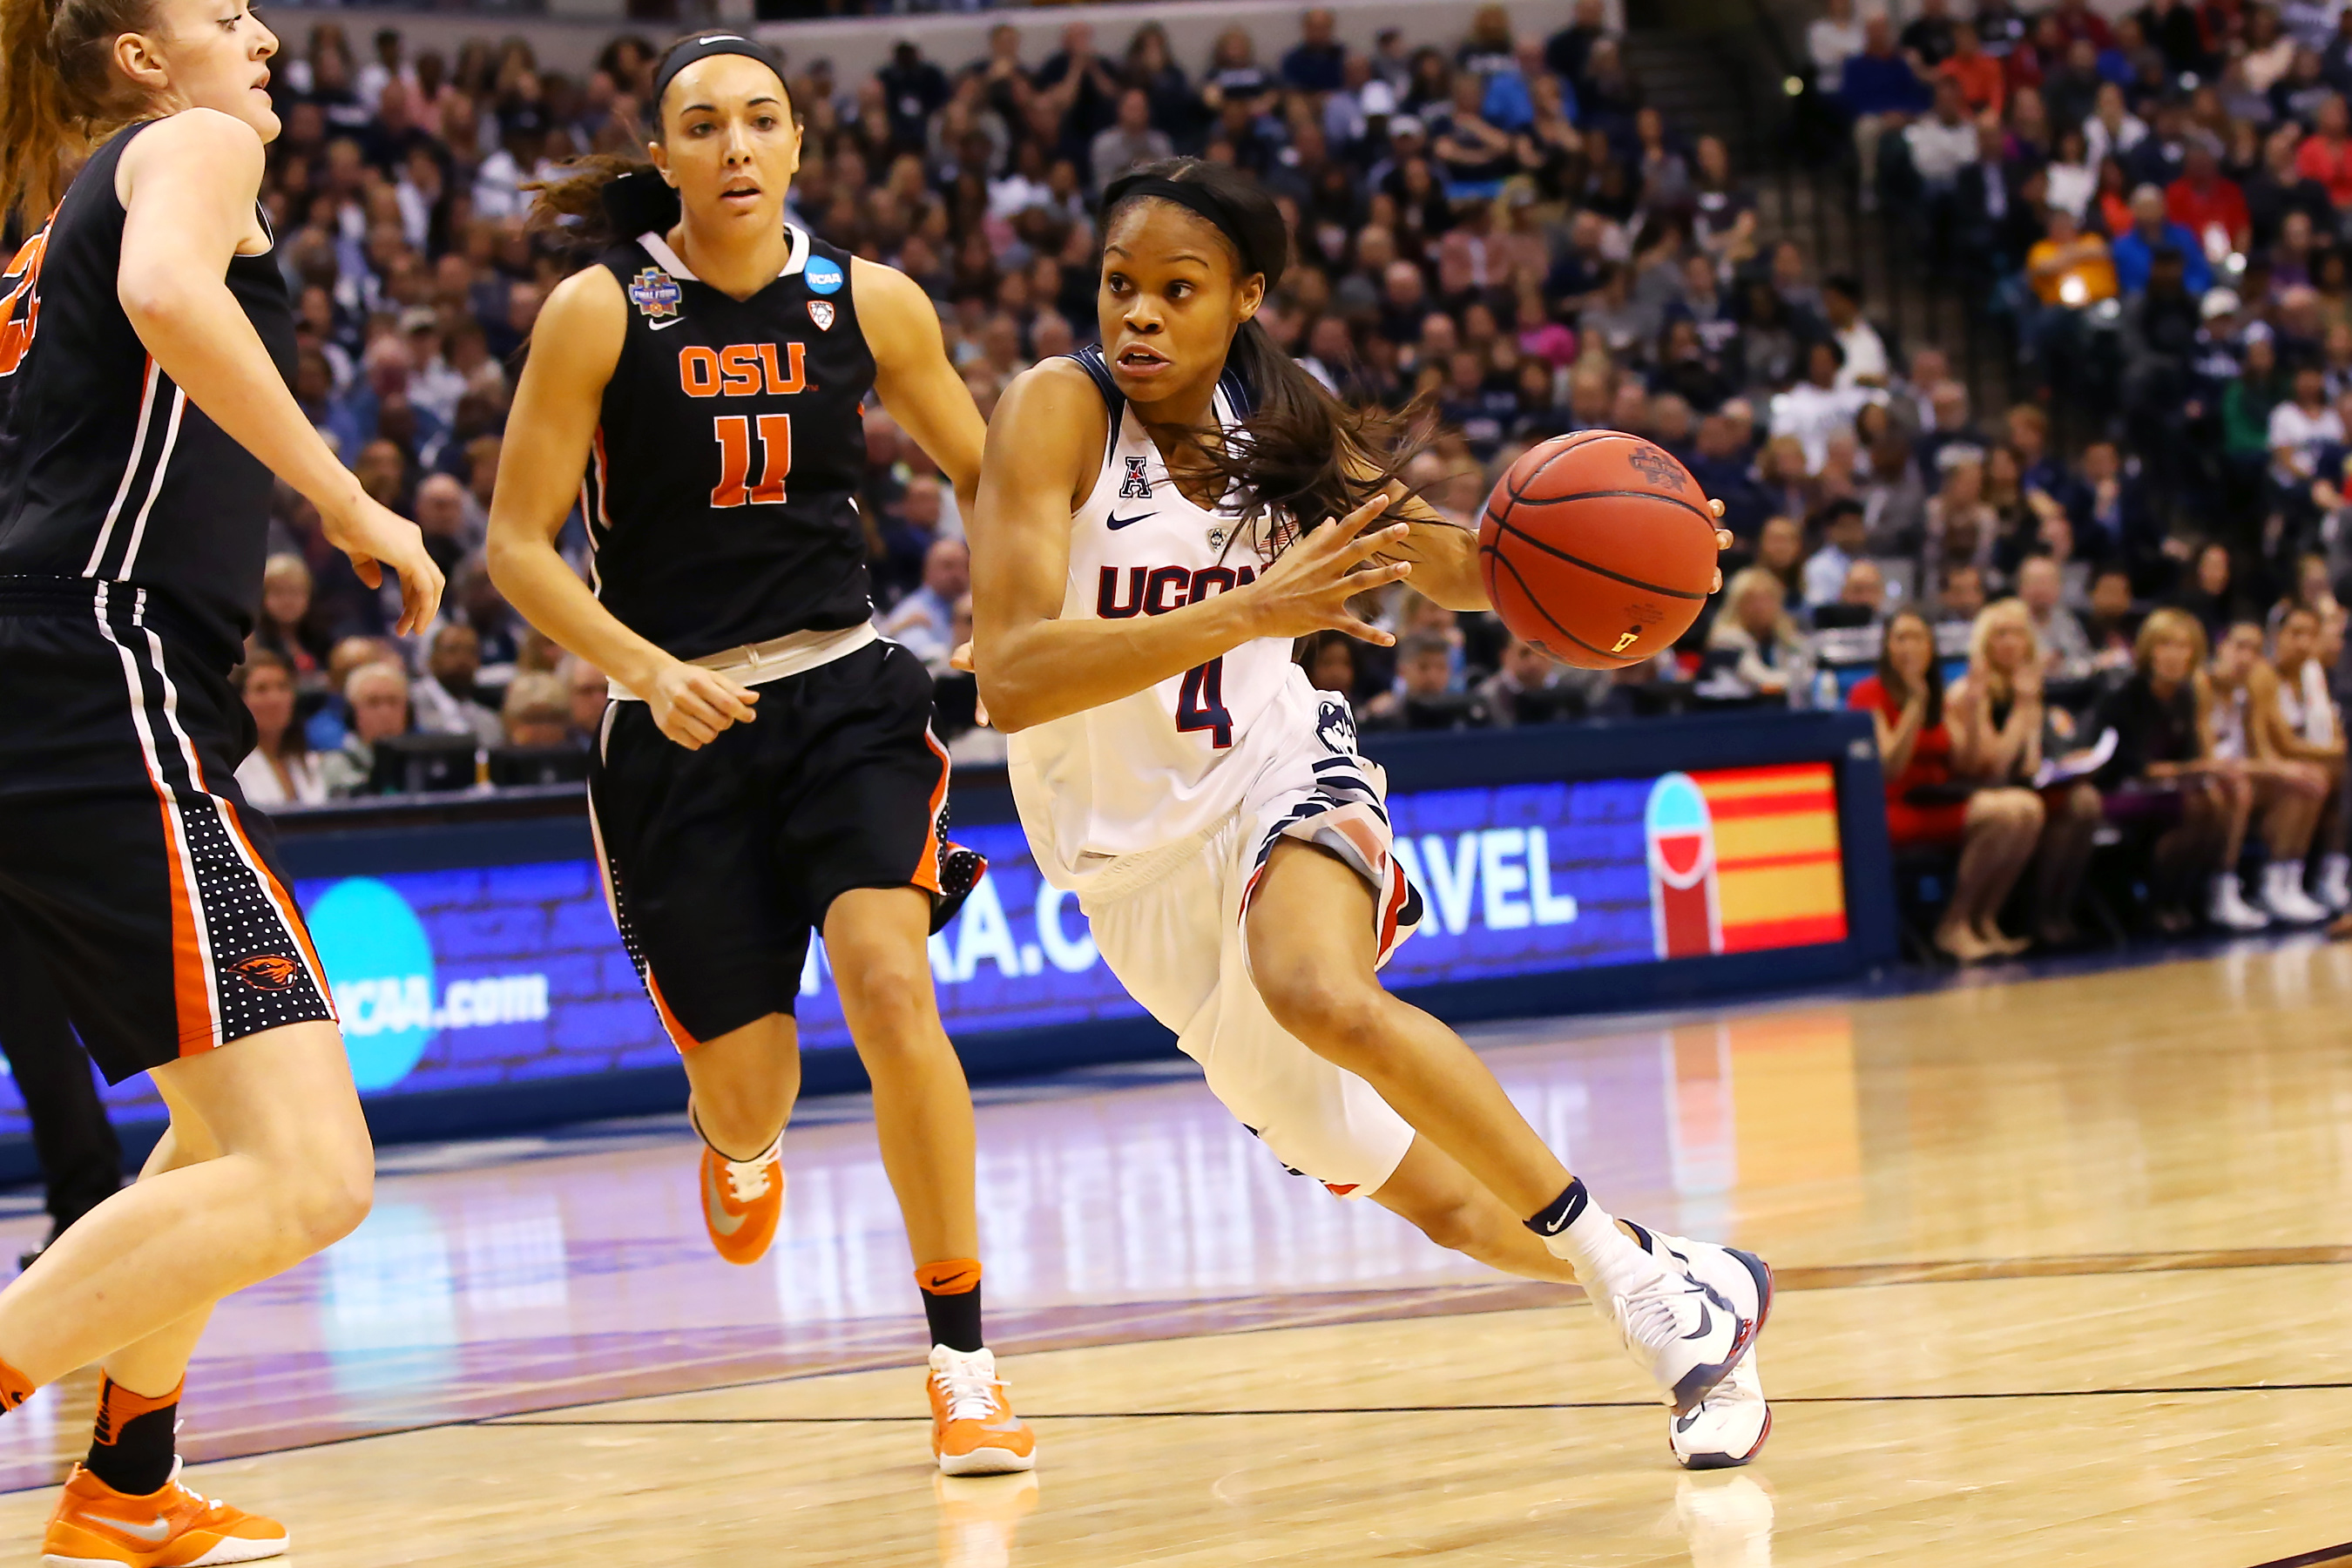 Moriah Jefferson '16 (CLAS) during the national semi-final game against Oregon State, April 3, 2016. (Stephen Slade '89 (SFA) for UConn)